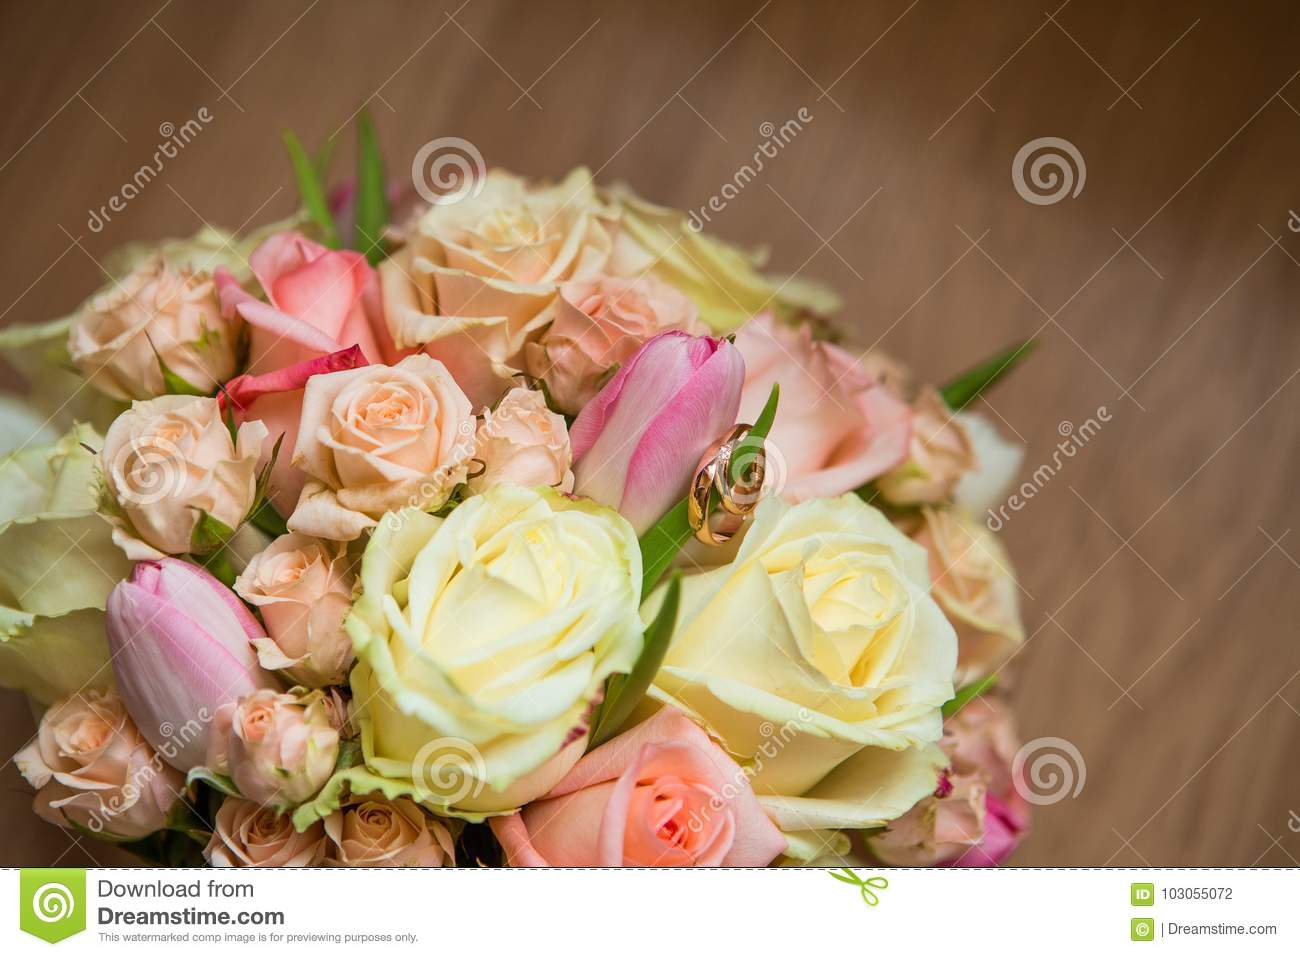 Wedding Bouquet With Pink White And Green Flowers Stock Photo